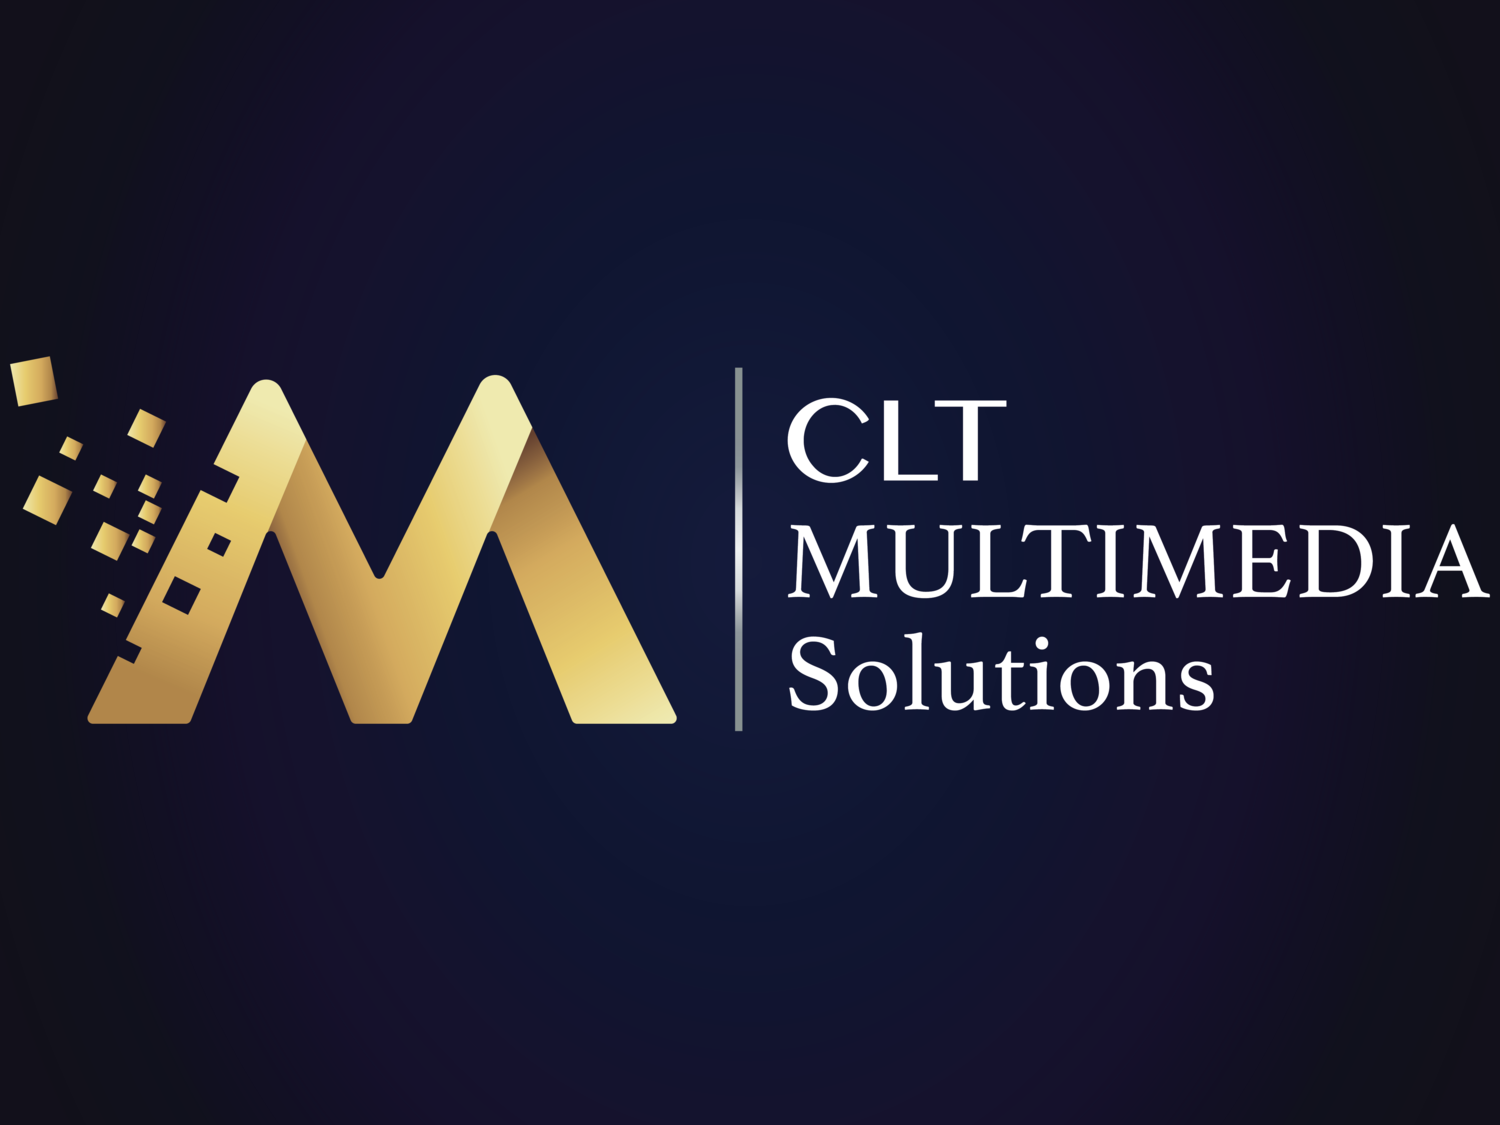 CLT MultiMedia solutions